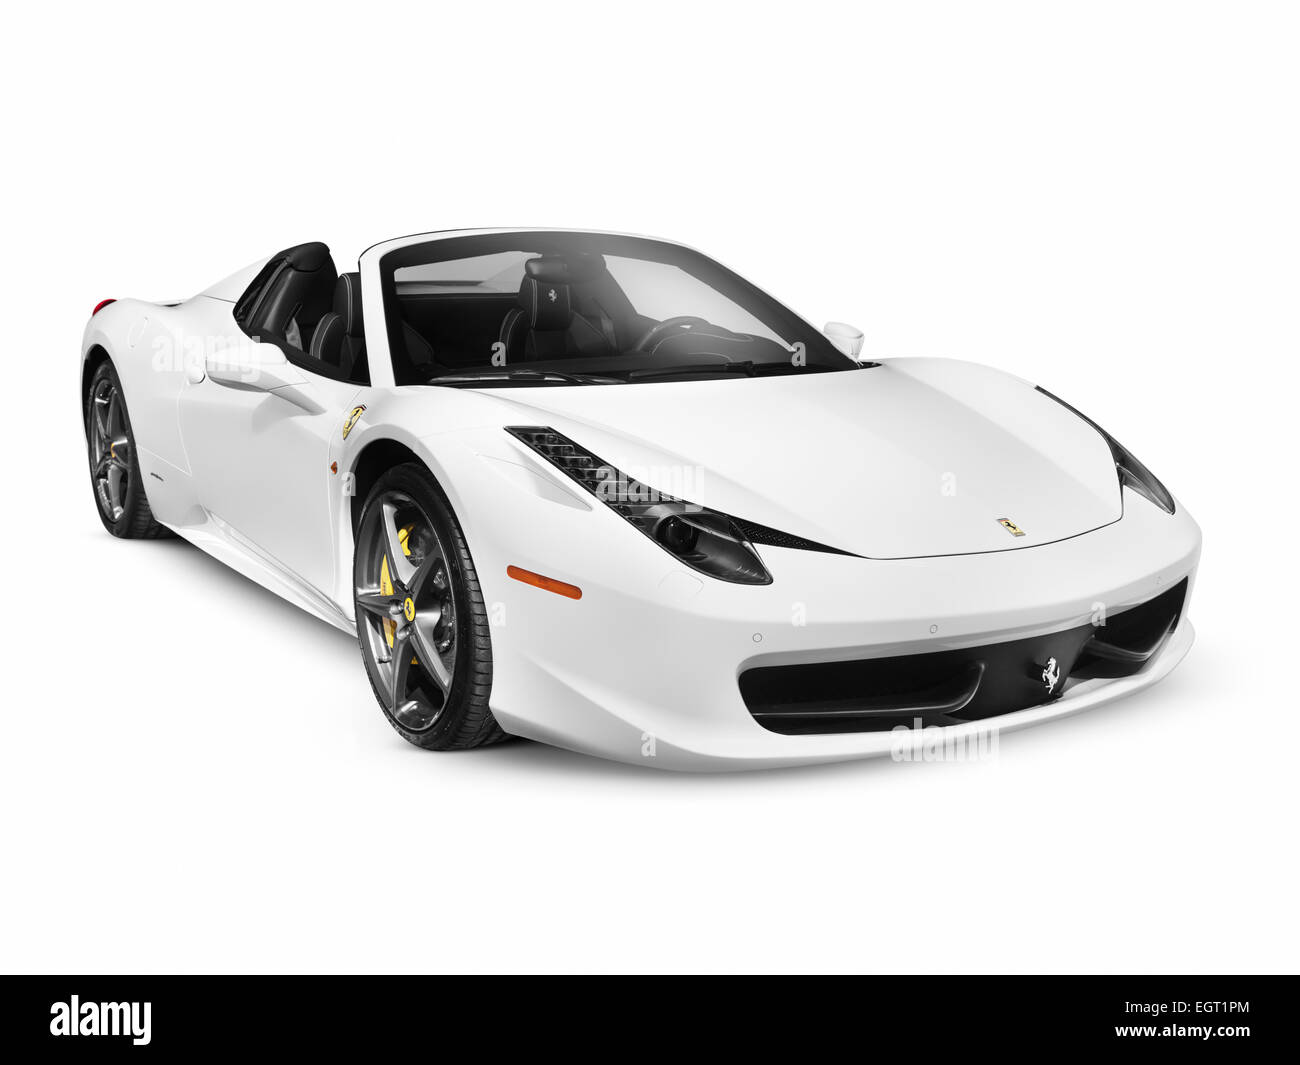 White 2011 Ferrari 458 Spider Supercar Sports Car. Isolated On White  Background With Clipping Path.